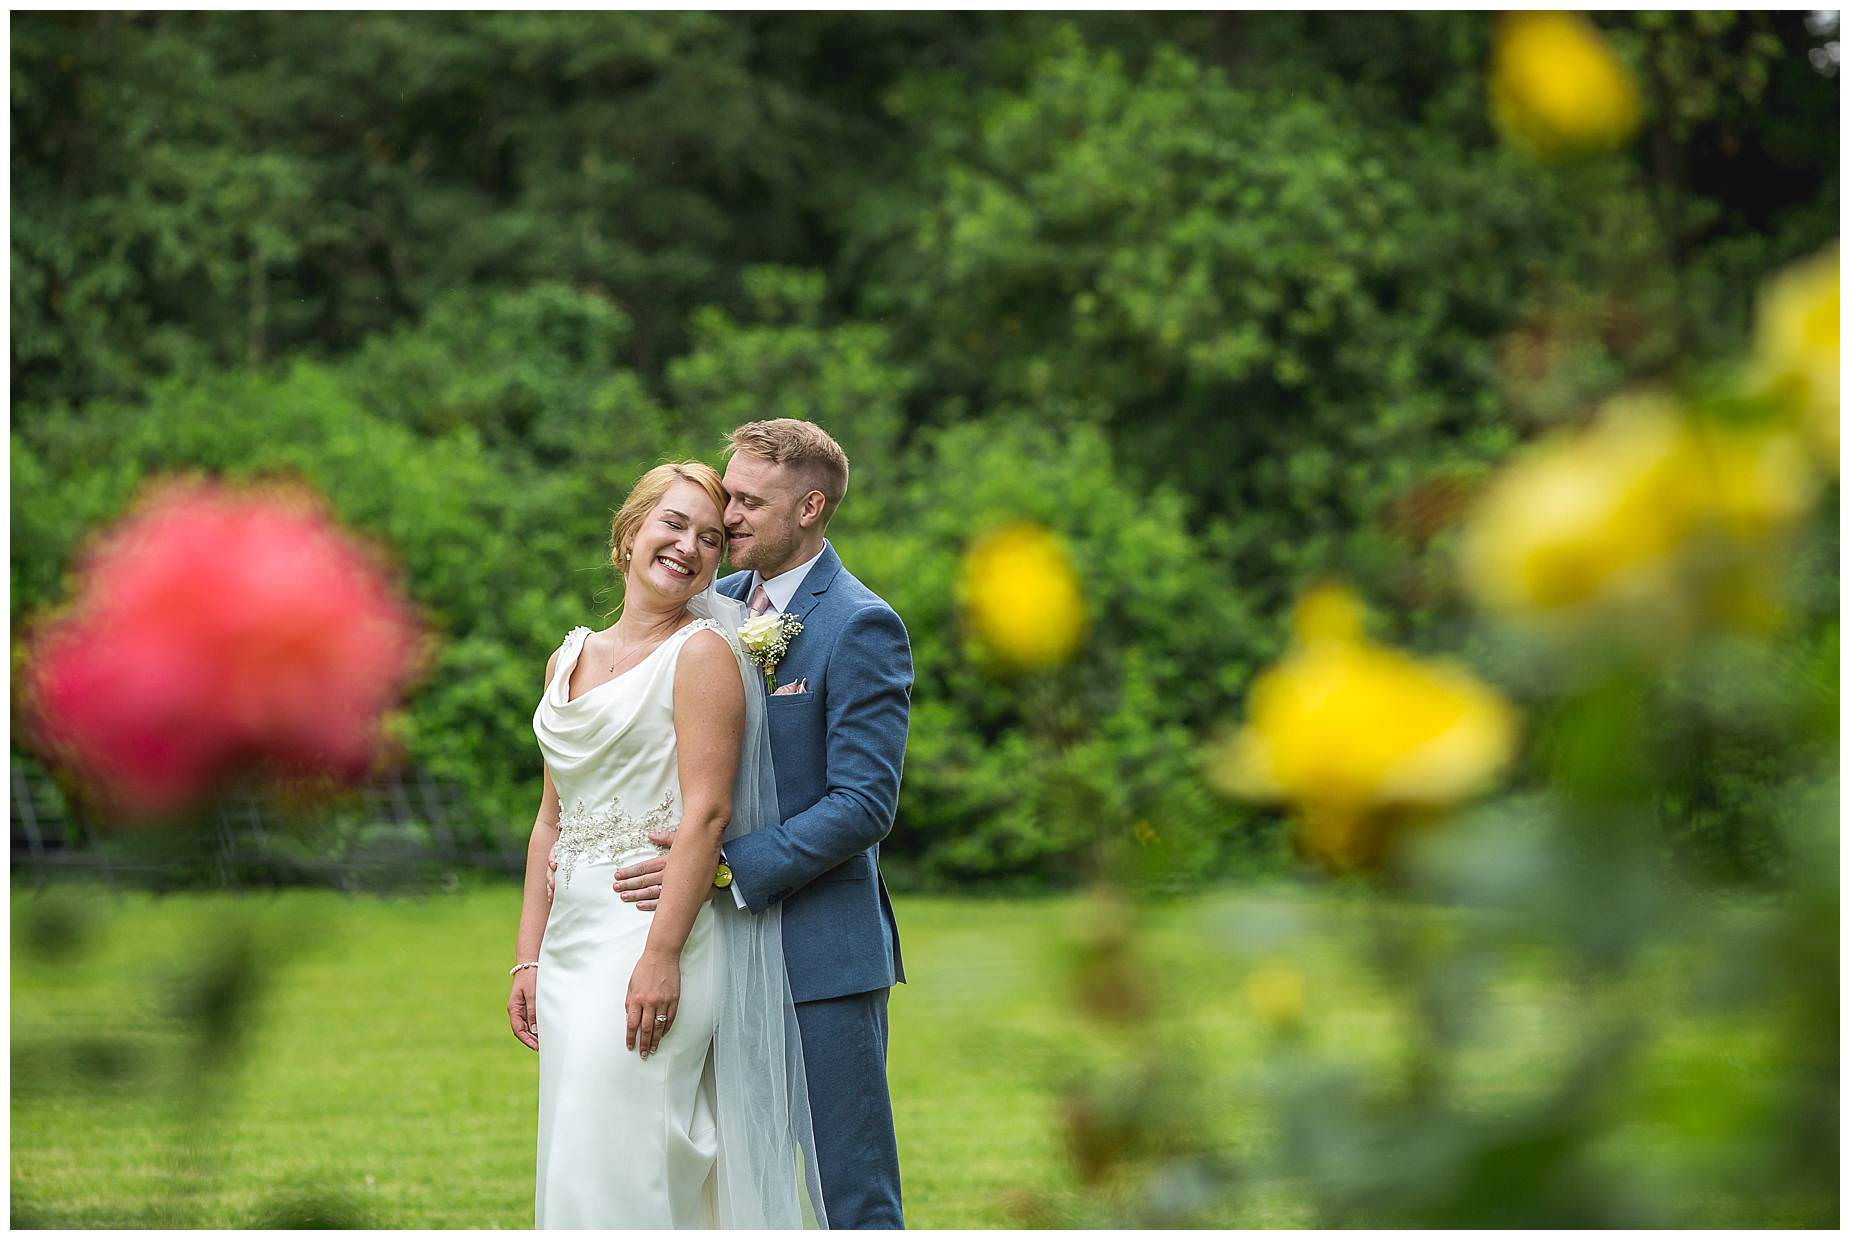 Chateau Roquelune Wedding Pictures